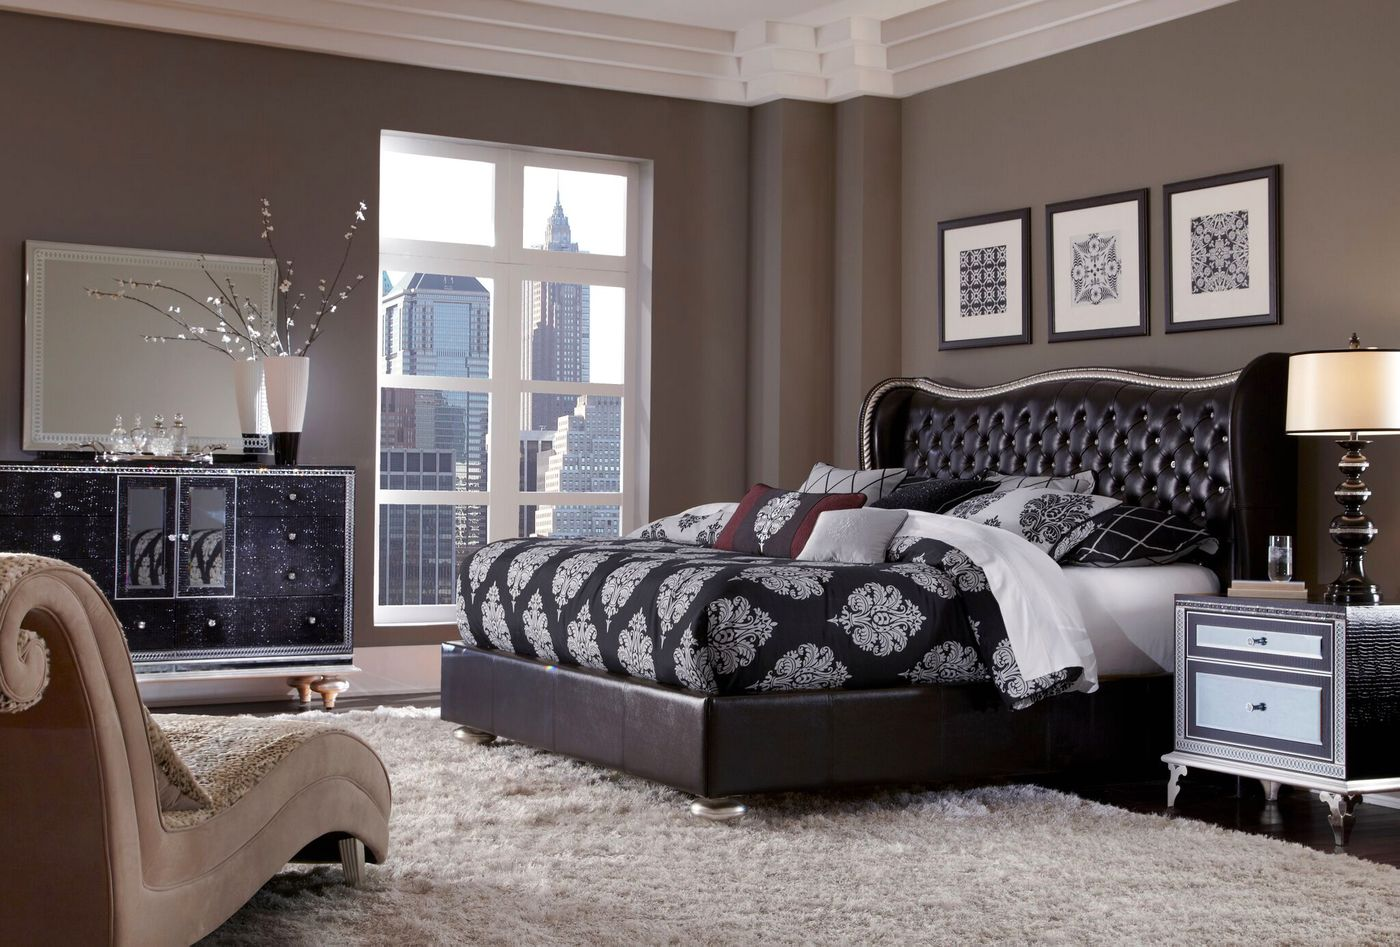 Details about Hollywood Swank Modern Starry Night Black Leather 10pc Queen  Bedroom Set